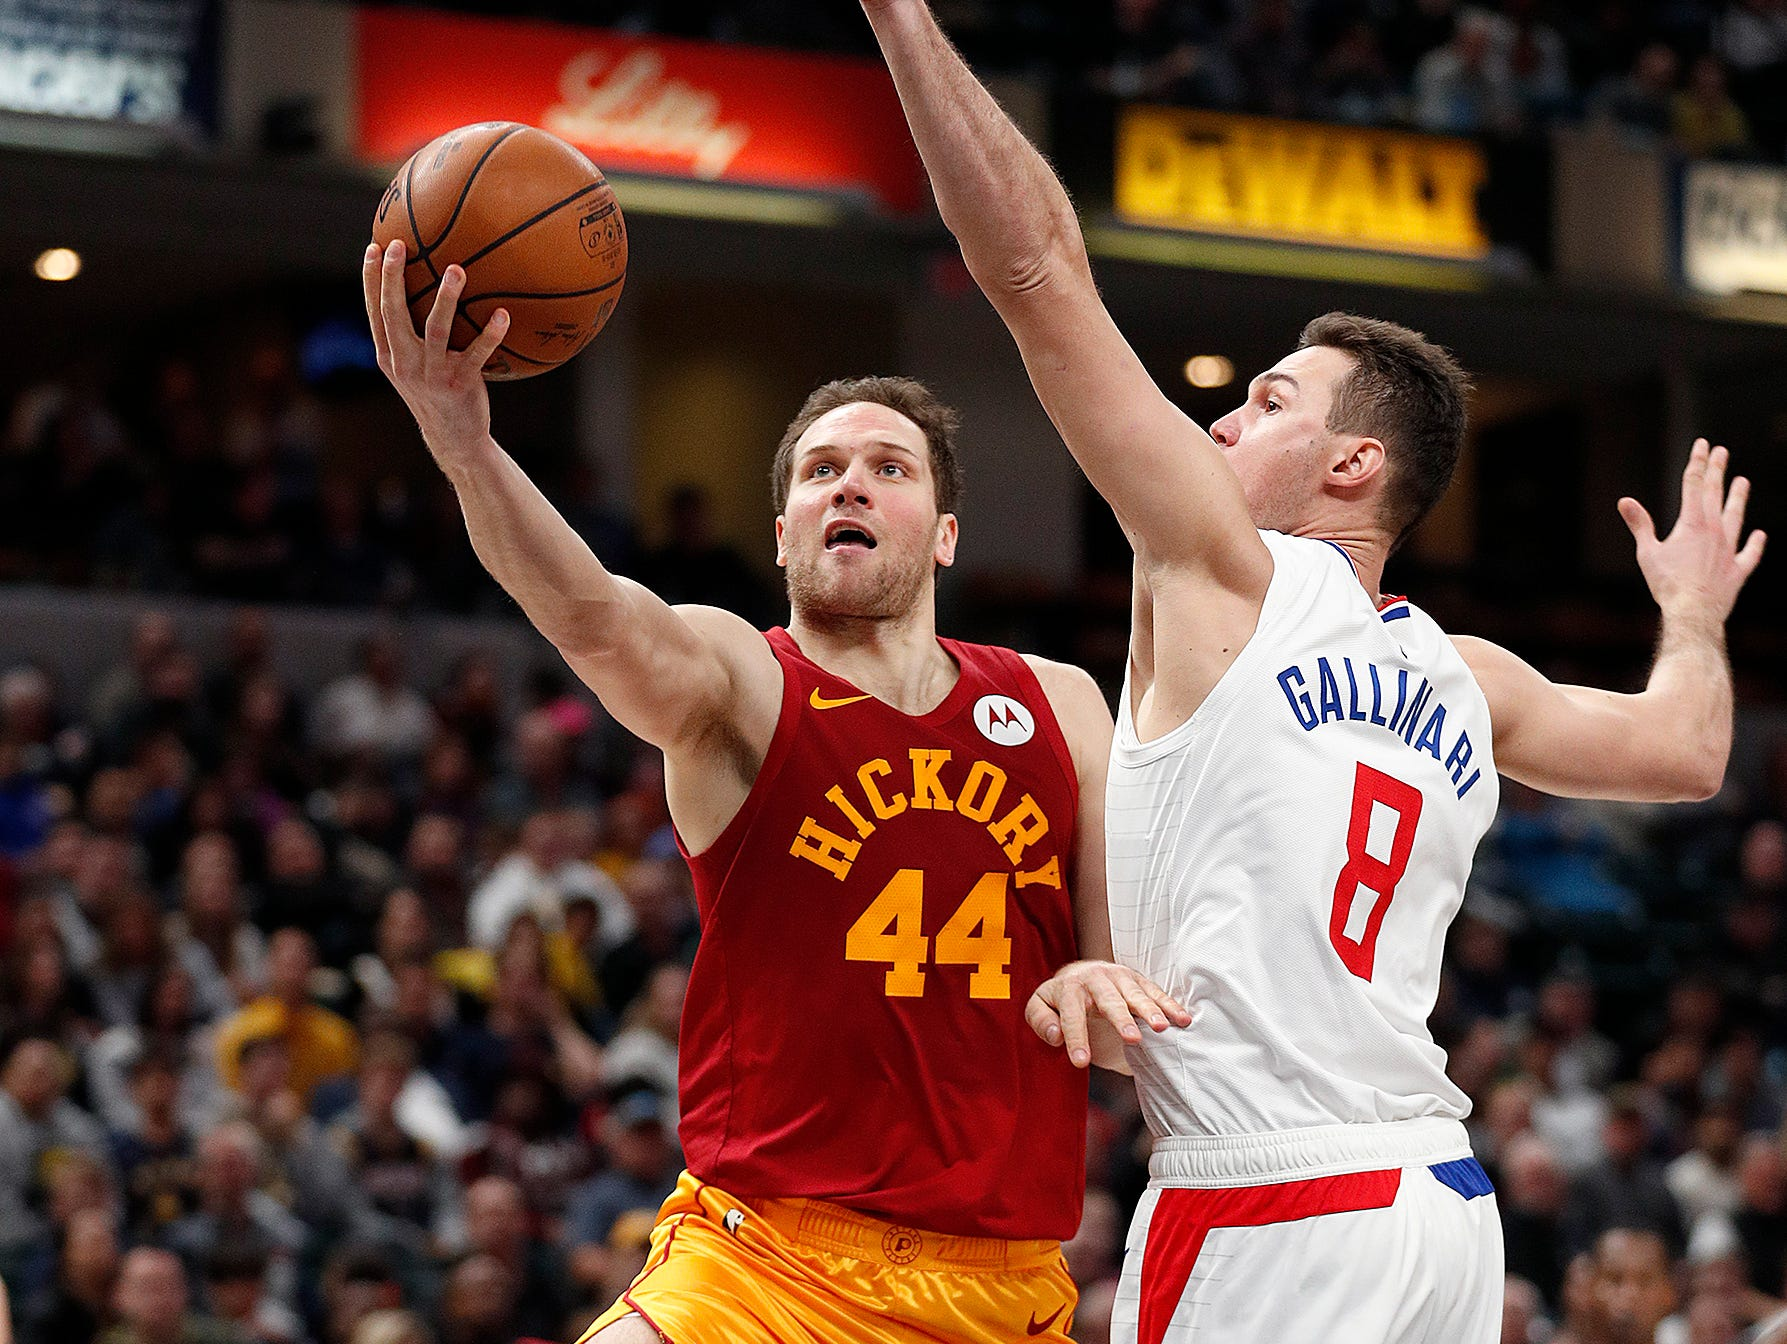 Indiana Pacers forward Bojan Bogdanovic (44) drives around LA Clippers forward Danilo Gallinari (8) in the second half of their game at Bankers Life Fieldhouse on Thursday, Feb. 7, 2019.